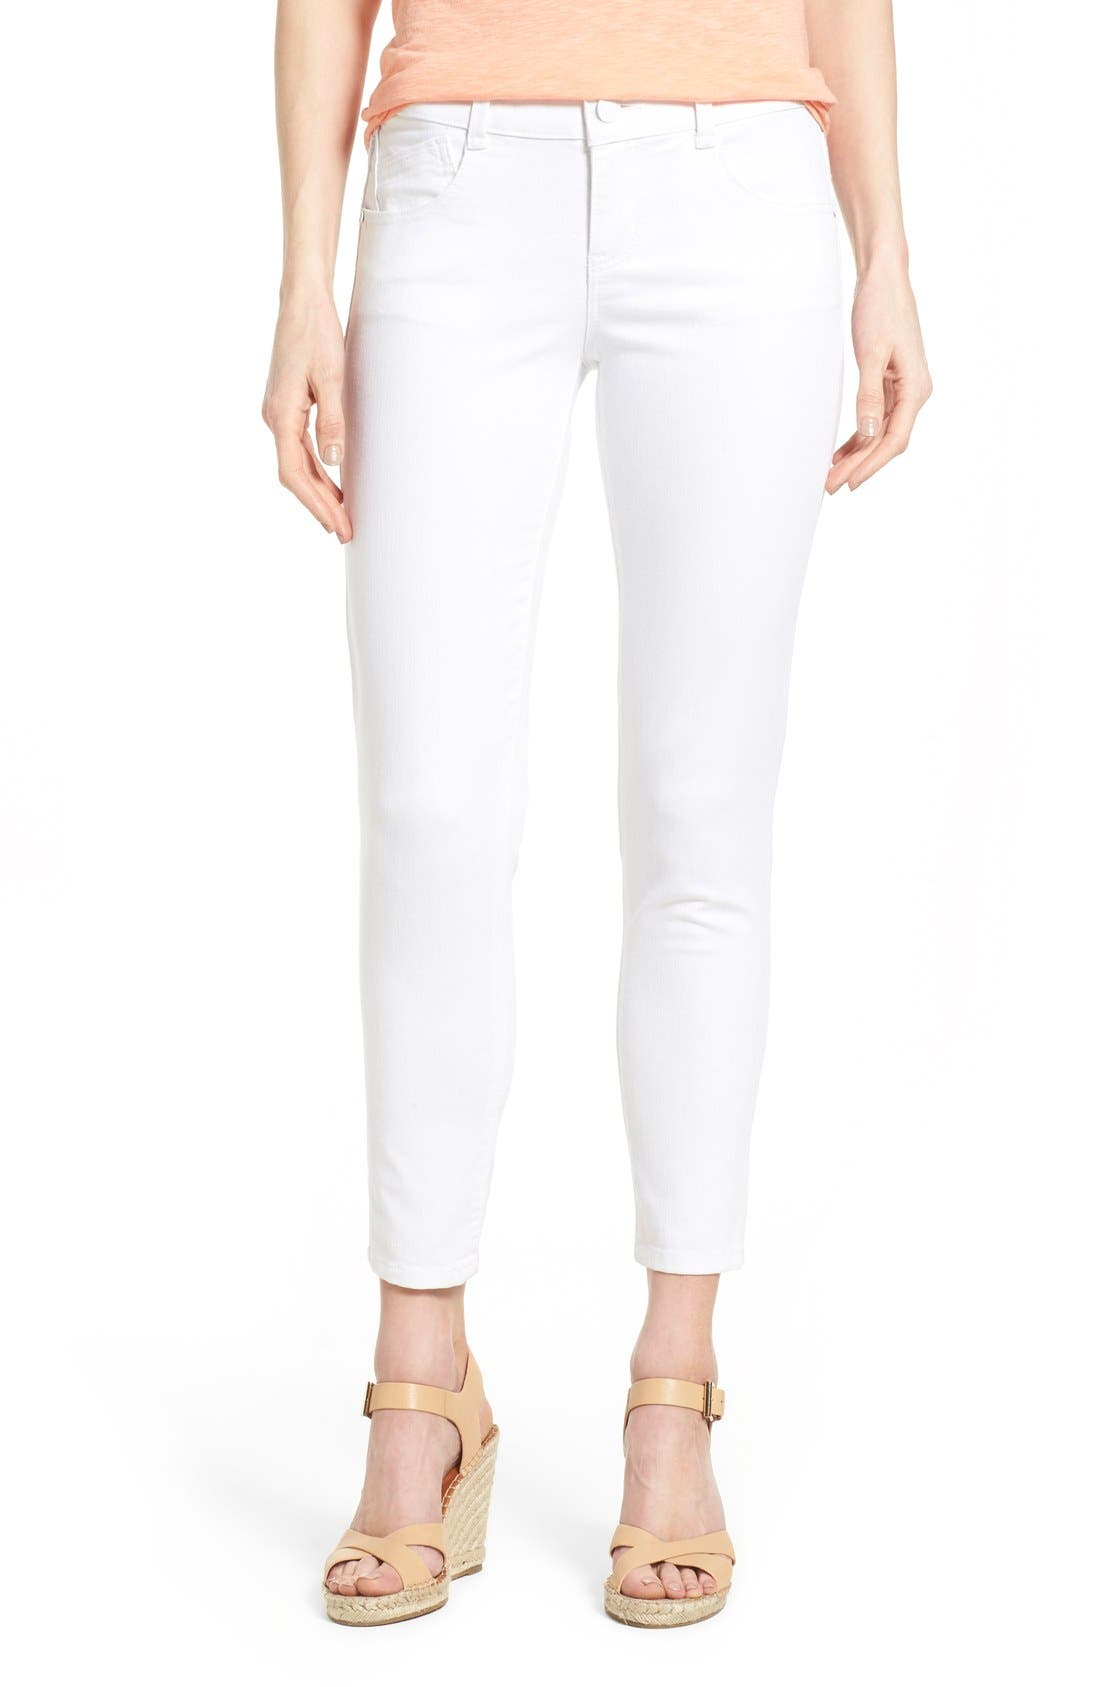 Alternate Image 1 Selected - Wit & Wisdom Ab-solution Stretch Ankle Skinny Jeans (Optic White) (Nordstrom Exclusive)